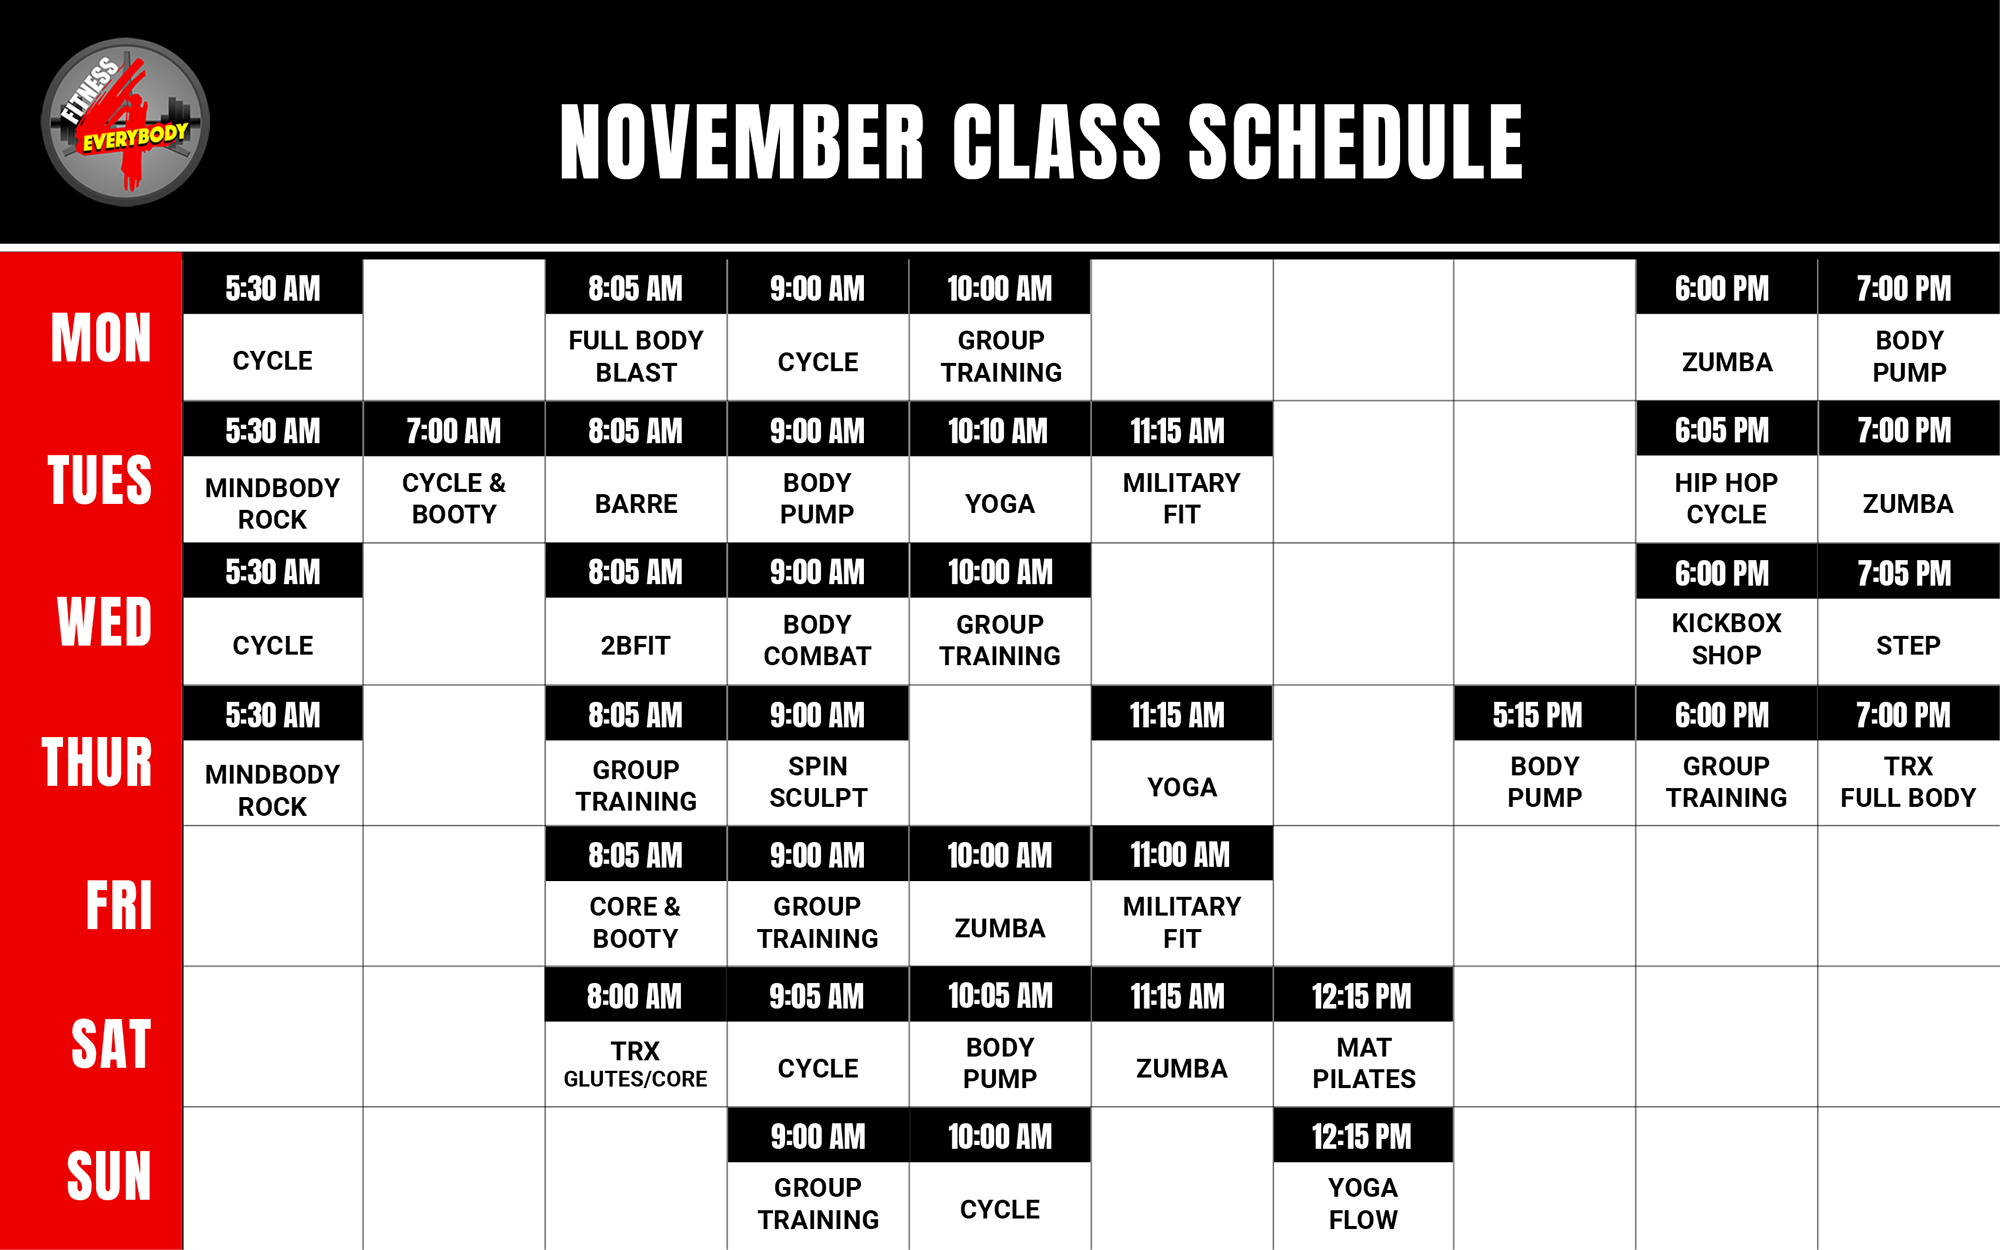 Fitness 4 Everybody Group Fitness Class Schedule for November 2019